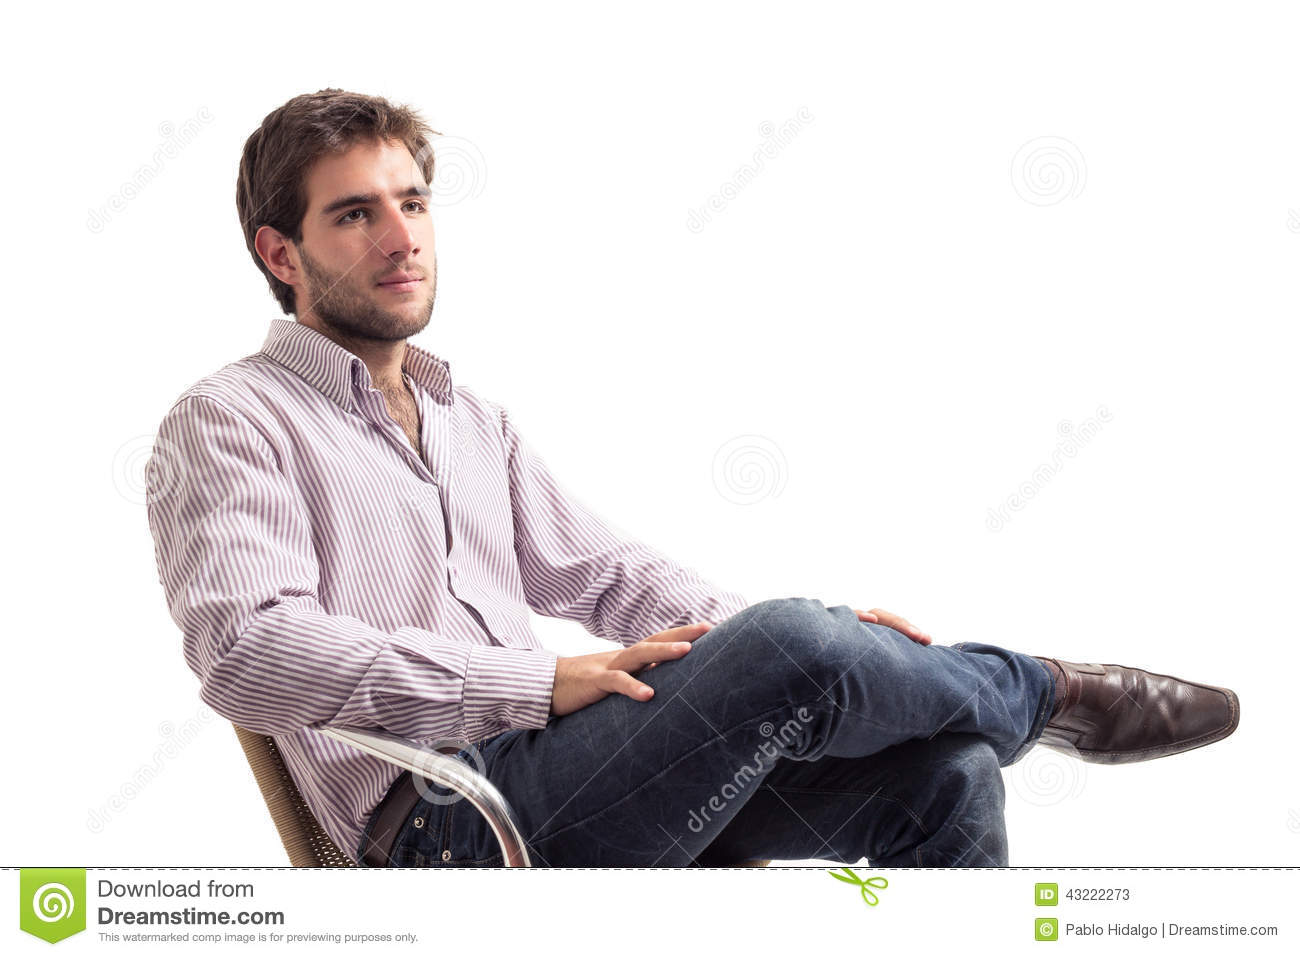 Pictures of Male Sitting Poses On Chair - #rock-cafe